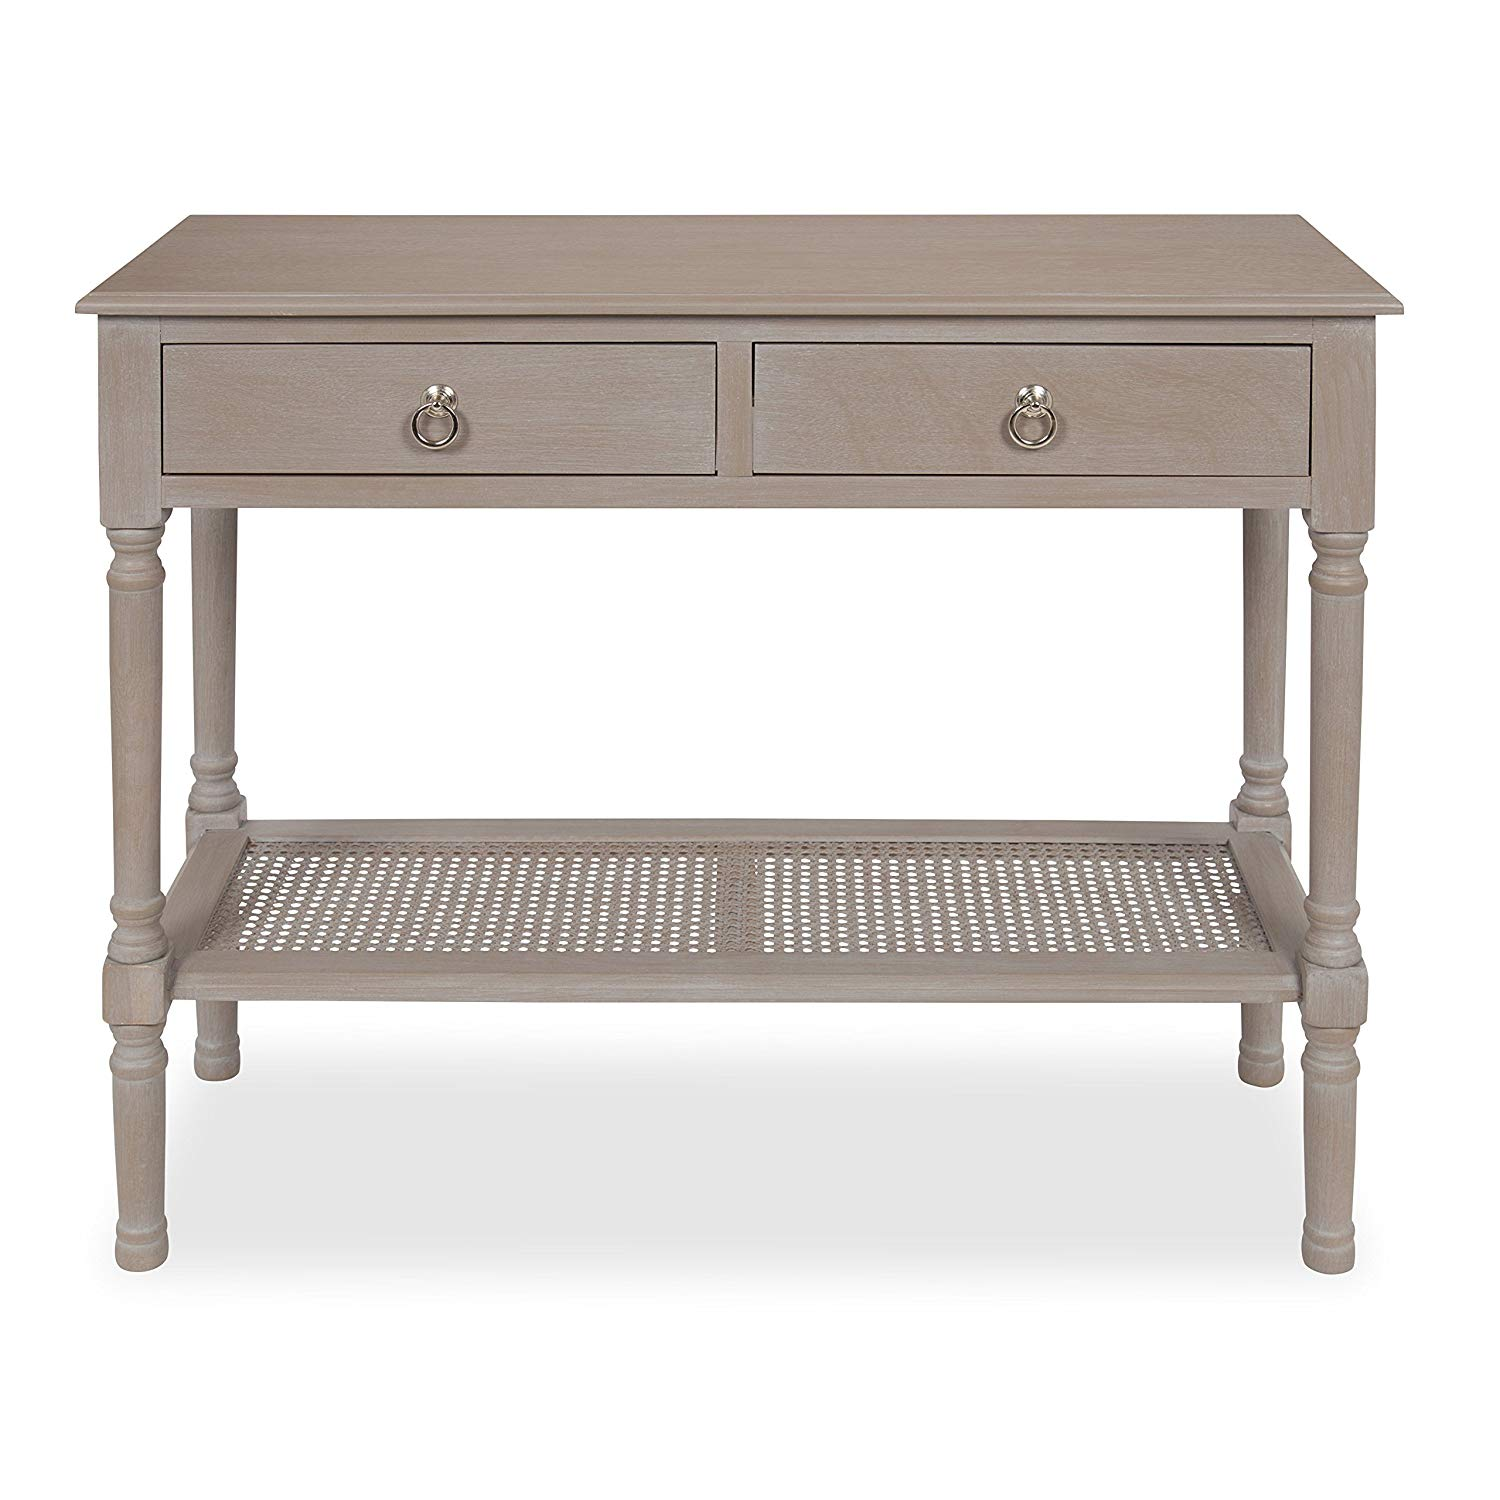 kate and laurel cayne wood console table with drawers weathered gray accent interwoven cane lower shelf kitchen dining west elm chandelier target swivel chair brown lamps